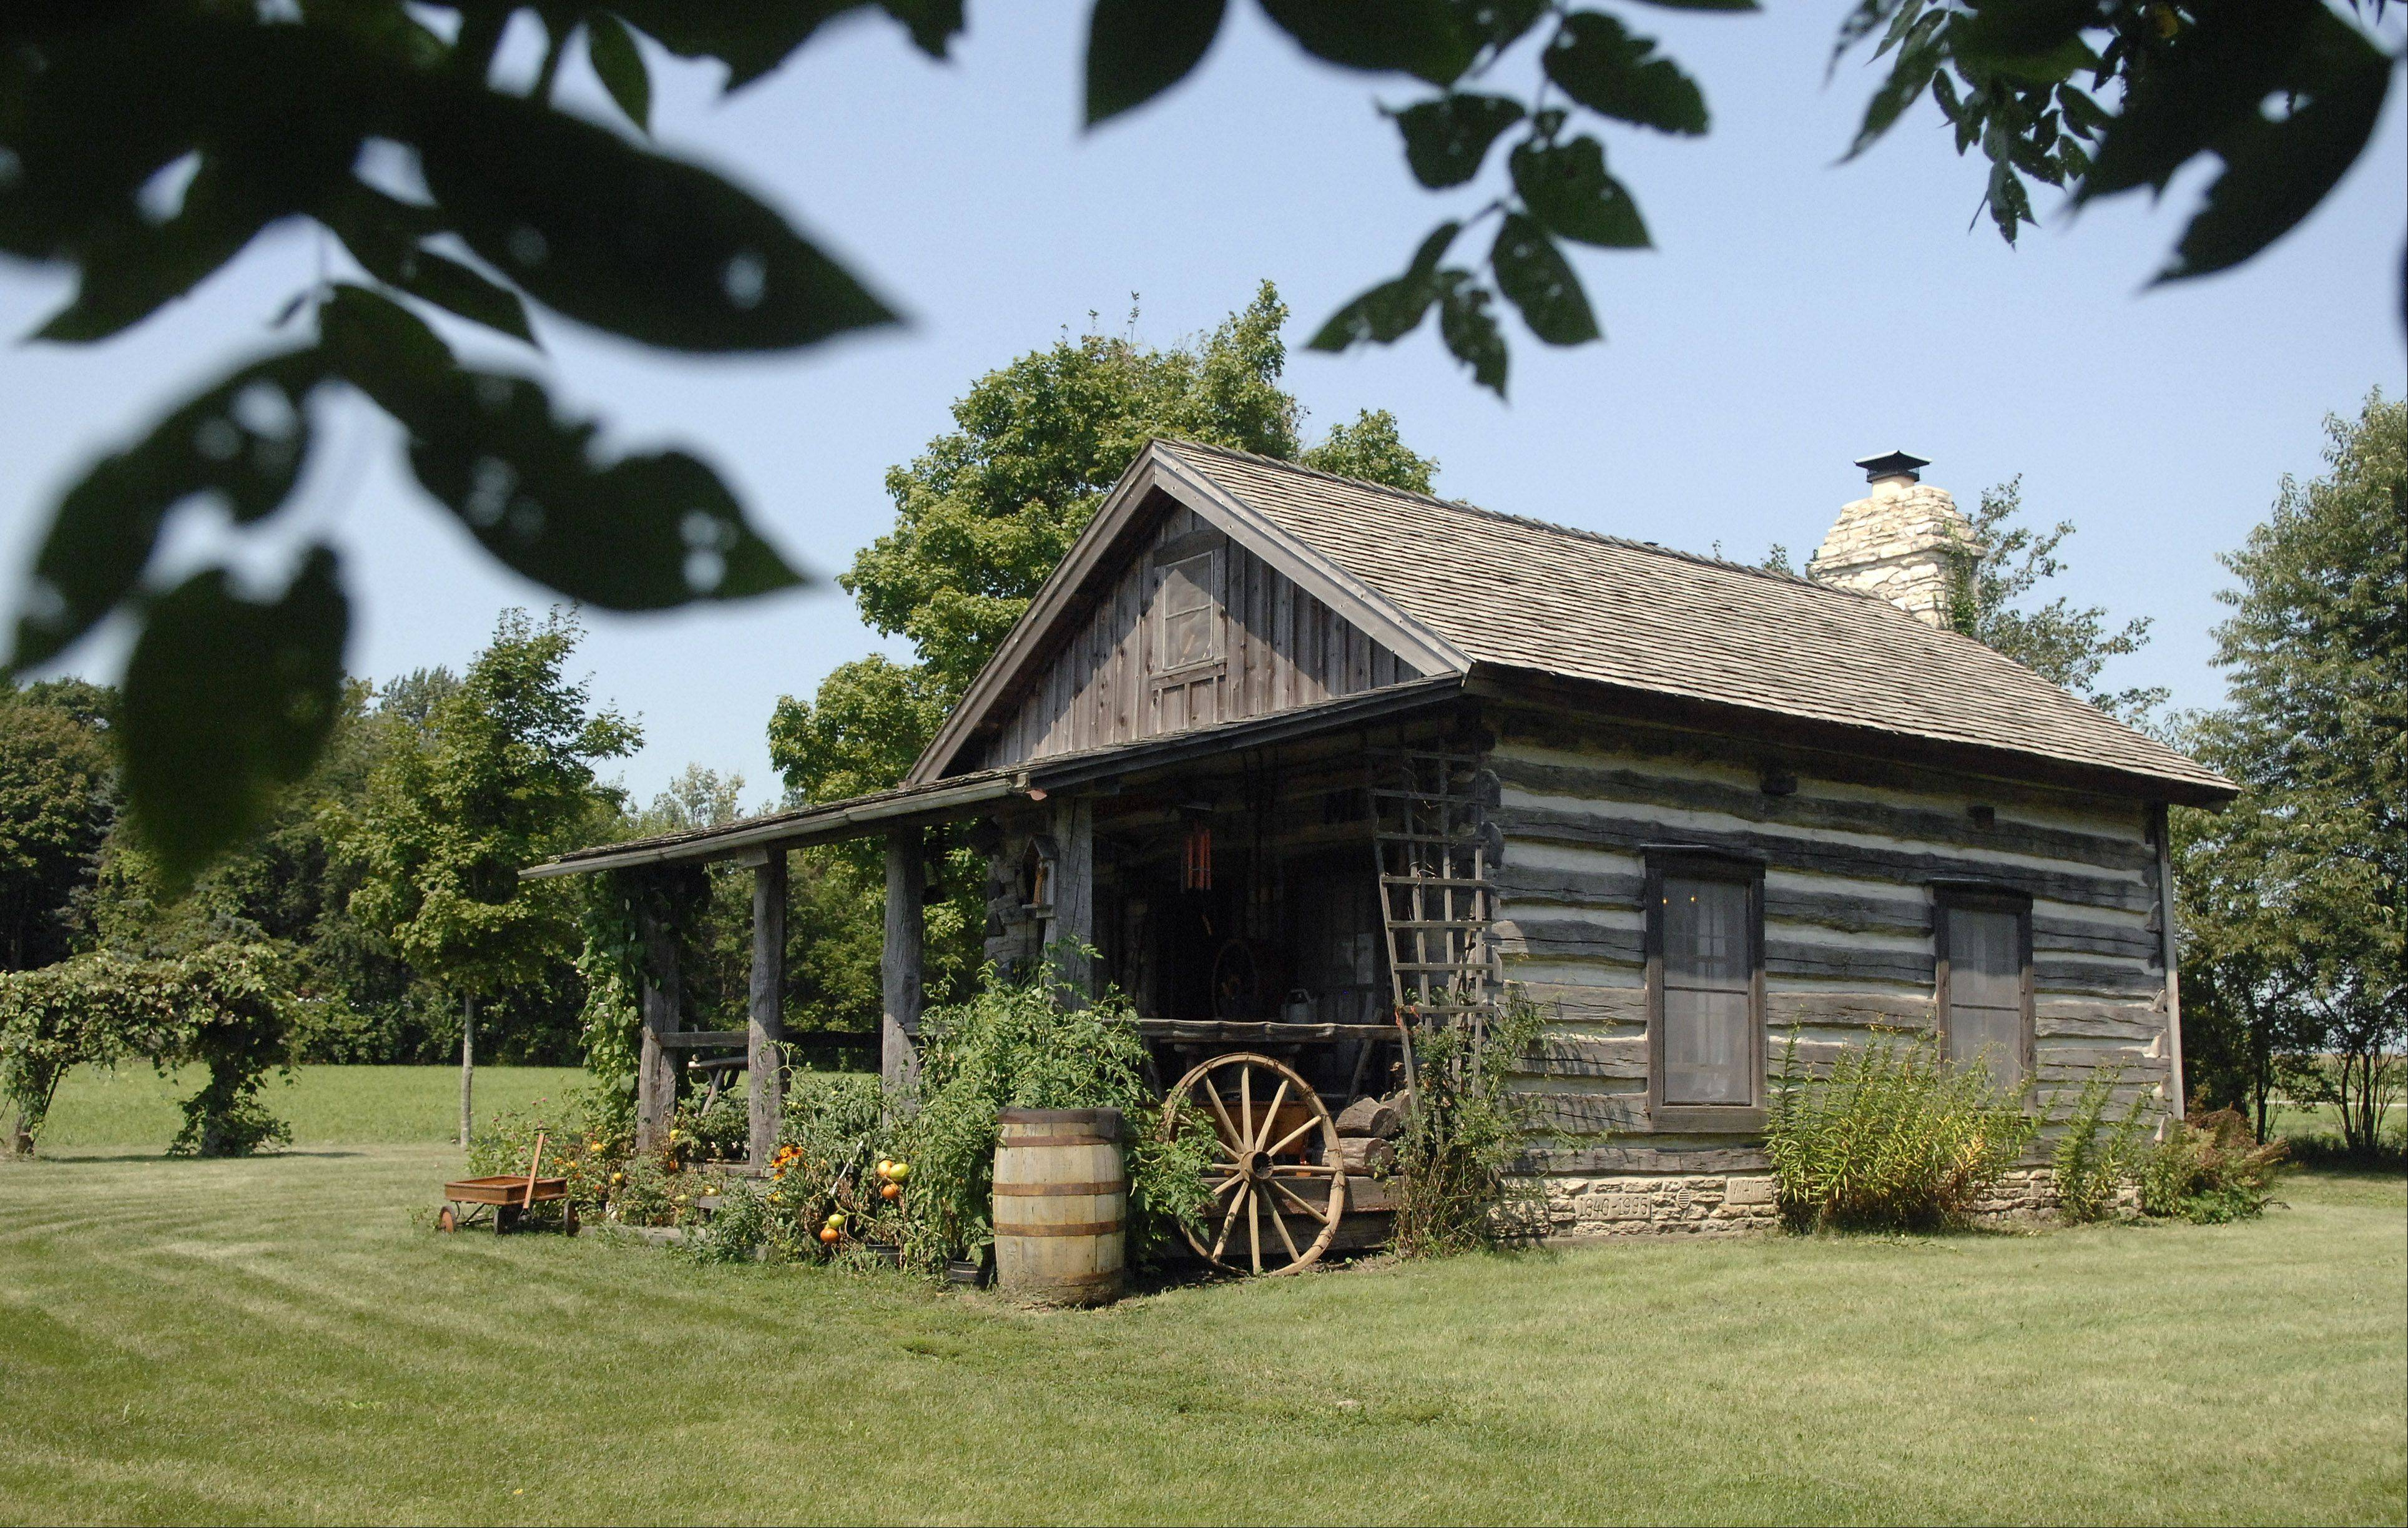 An old log house that John White moved to his farm near Batavia reminds us how pioneers lived.